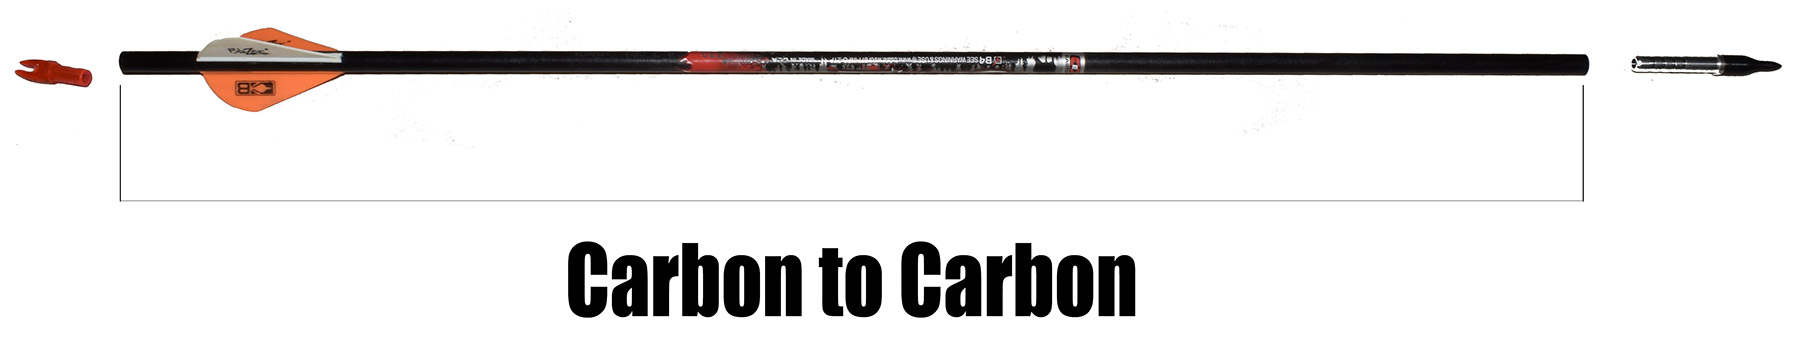 Measure Arrow Length - Carbon to Carbon